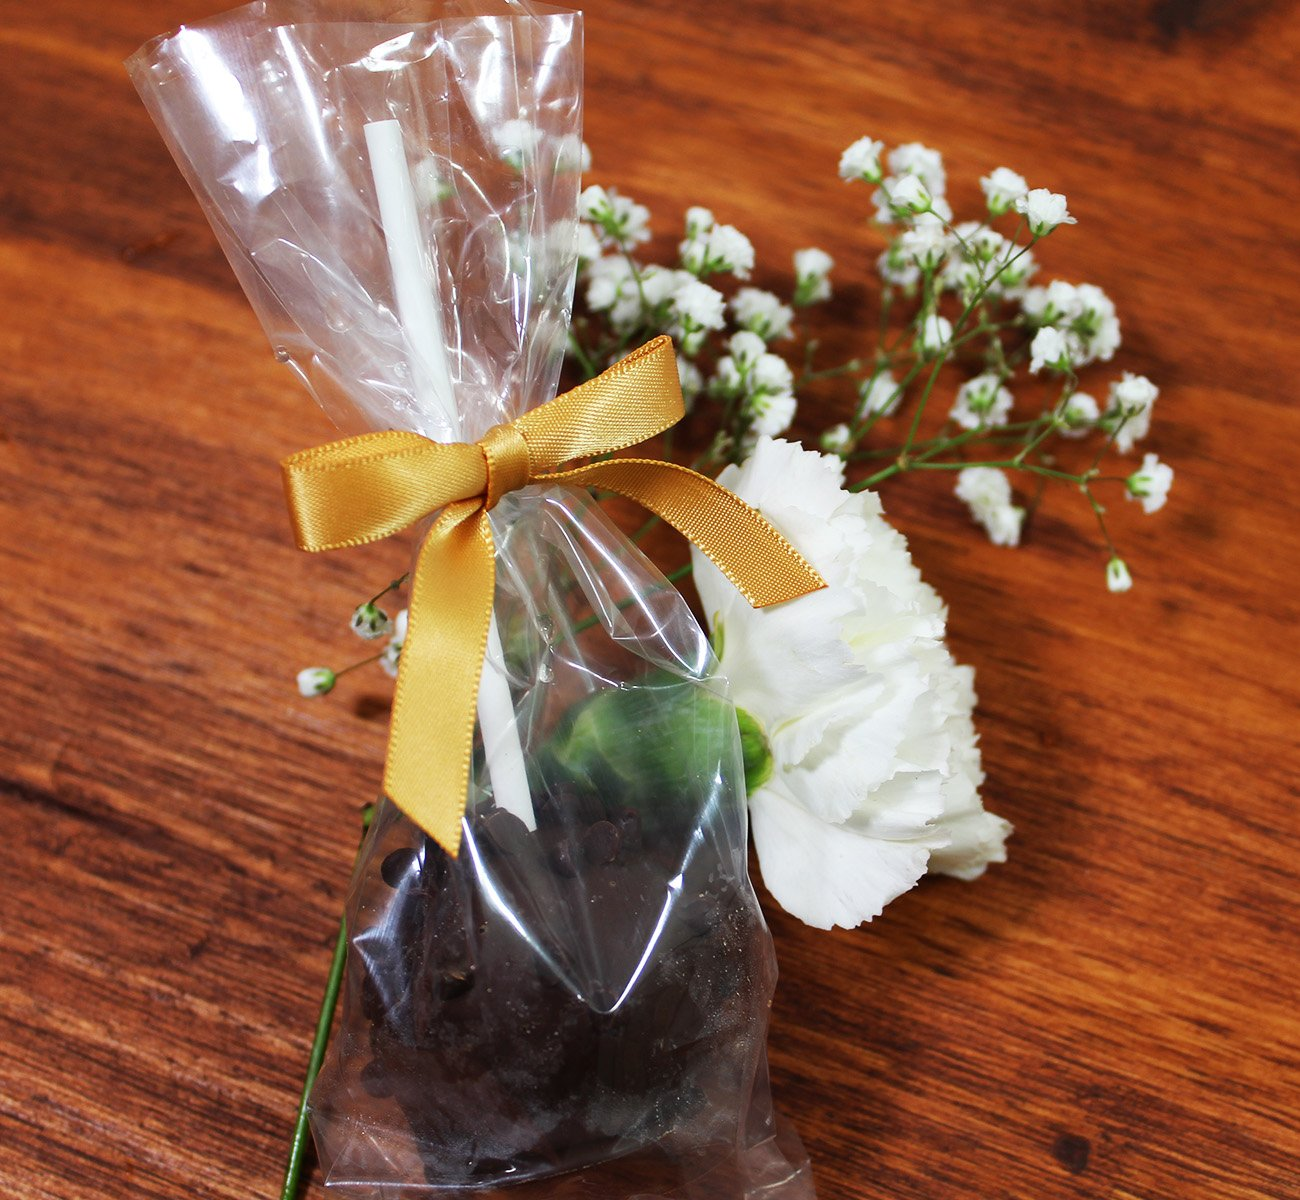 Cake Pop Bags with Gold Twist-tie Bows. Set of 24 Small Clear Cellophane Gift Treat Bags with Satin Pre-Tied Bows Clear, Gold